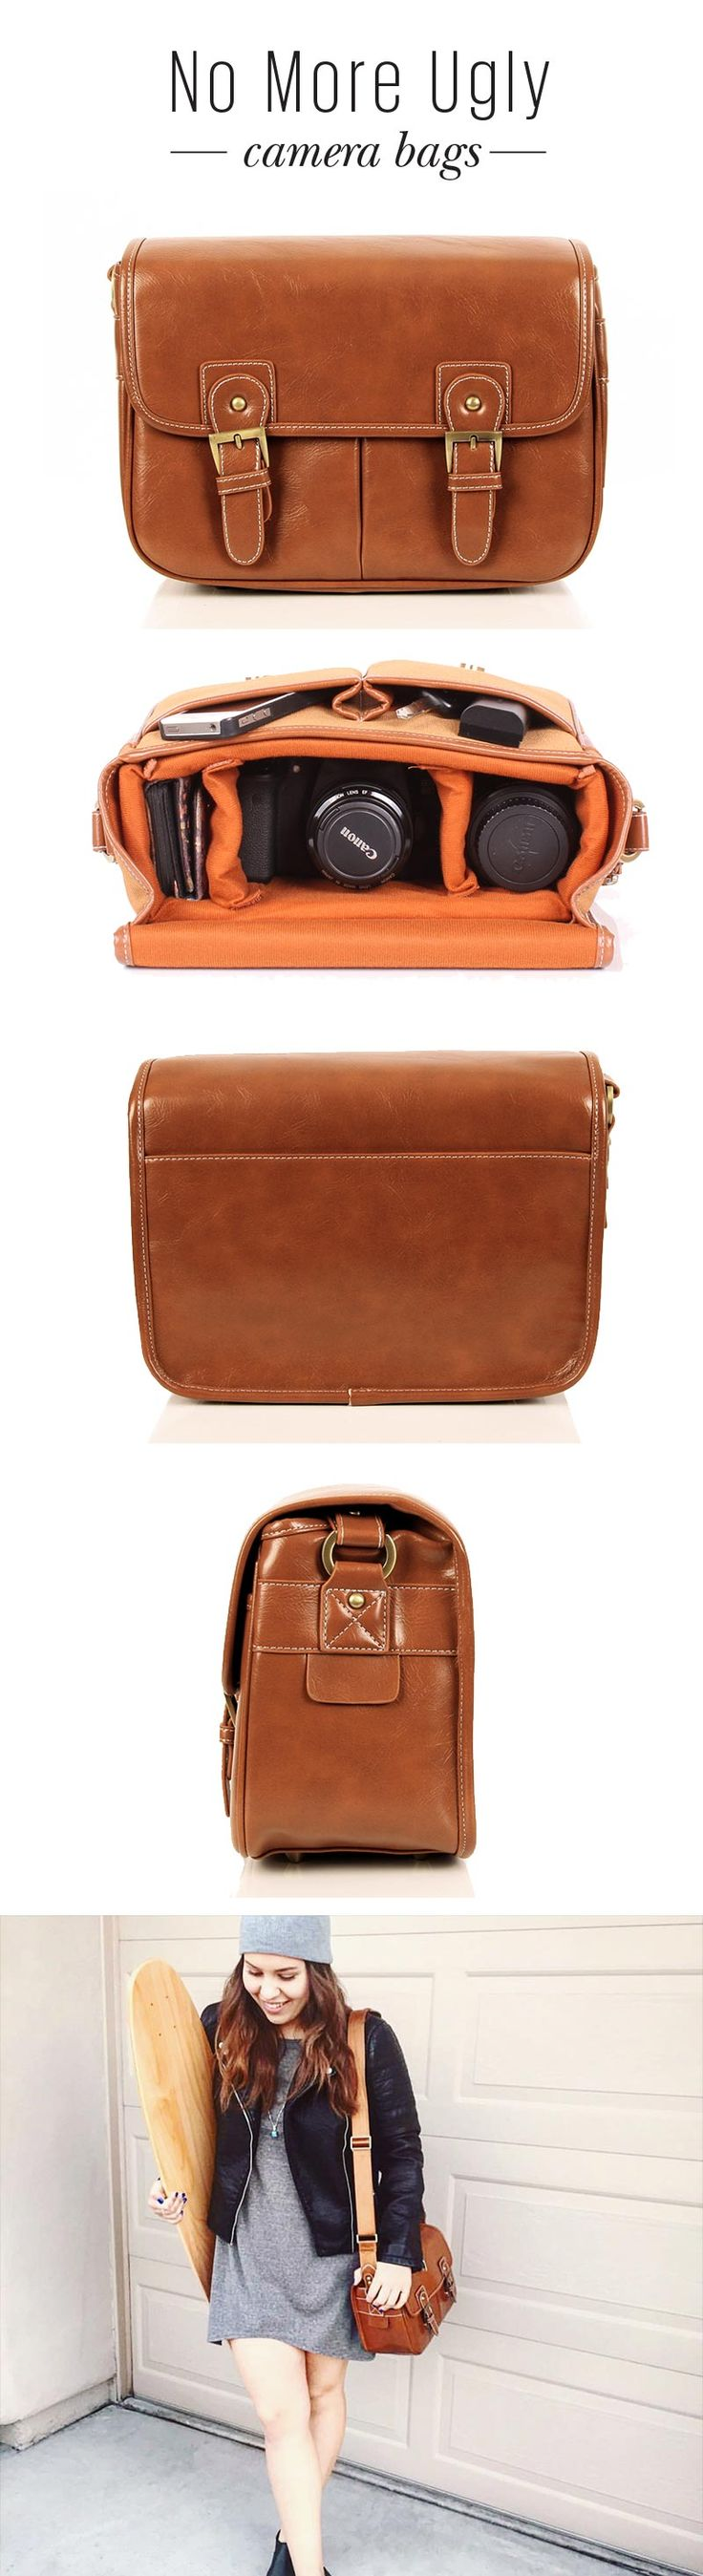 Vintage style leather look camera bag. A stylish camera bag that will protect your DSLR camera and fit your personal junk when you travel. Perfect for: the casual photographer, the traveller or the fashion conscious. No more leaving your DSLR behind, and no more ugly camera bags.